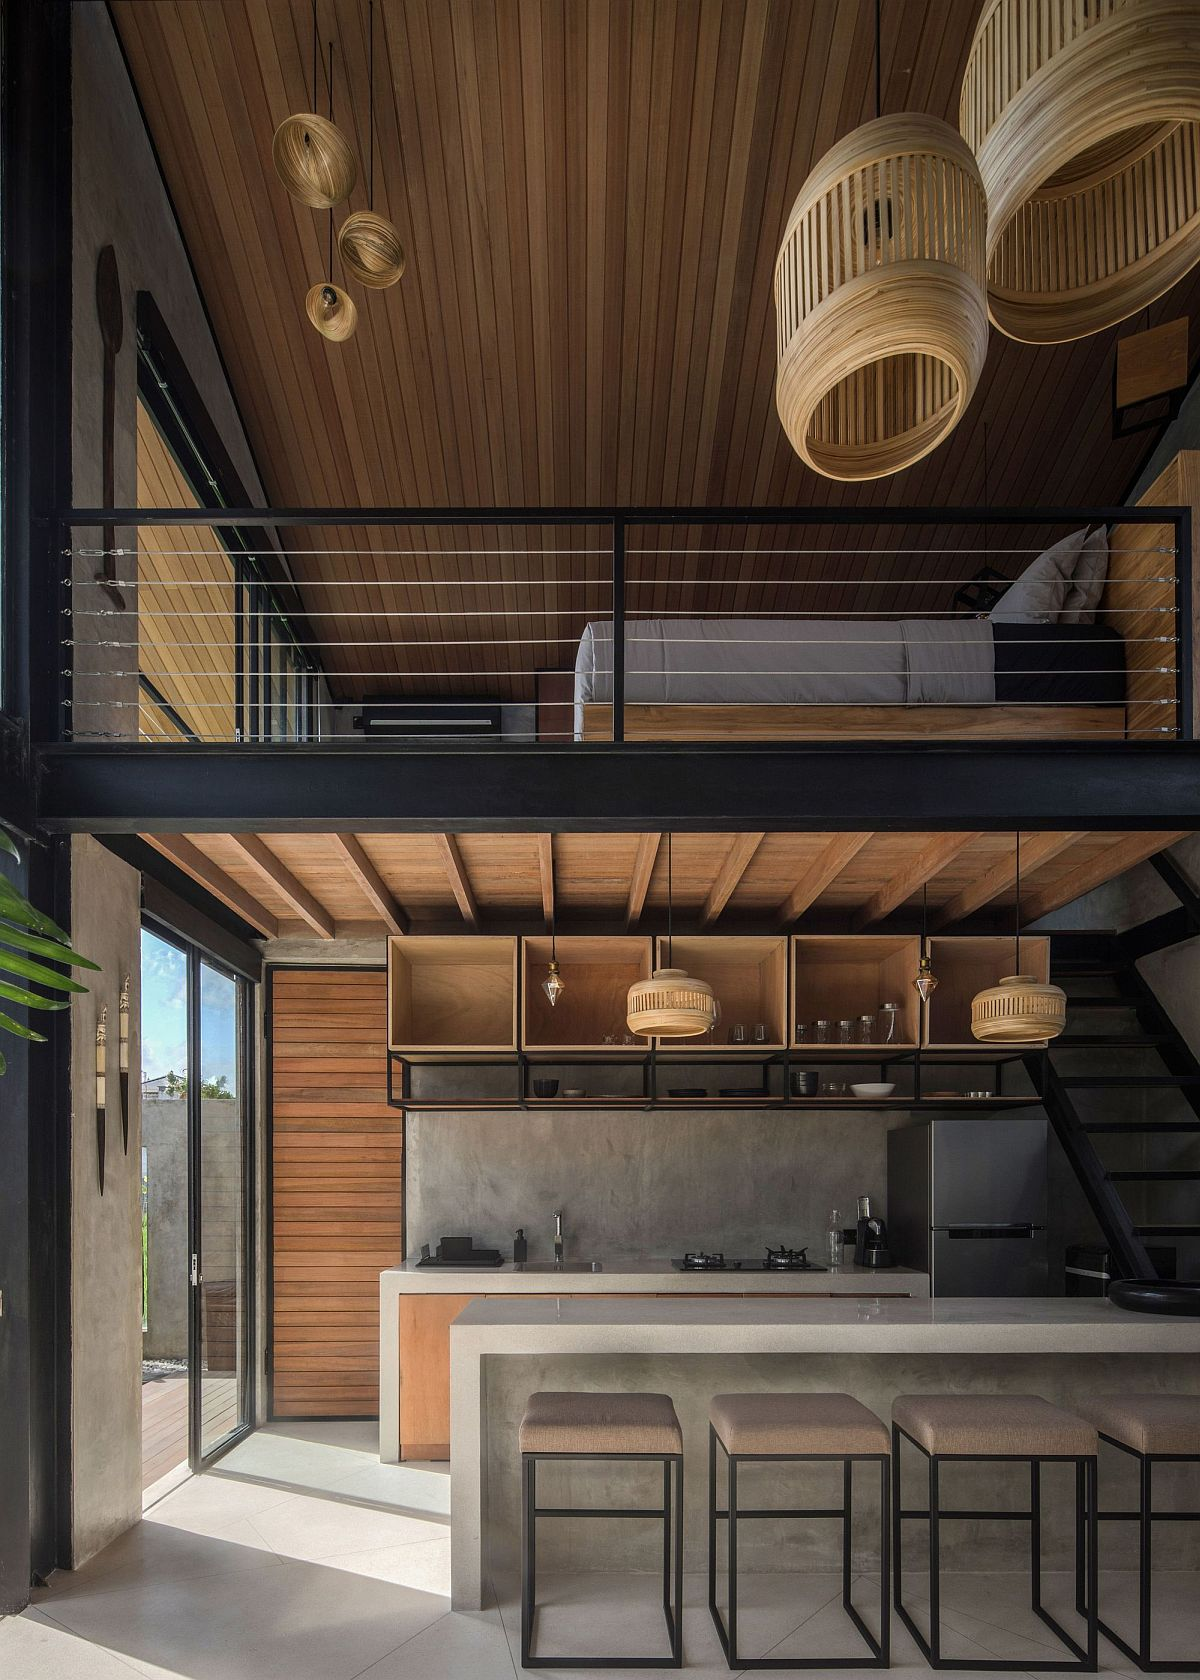 Industrial style home in Indonesia with a loft level bedroom above the kitchen